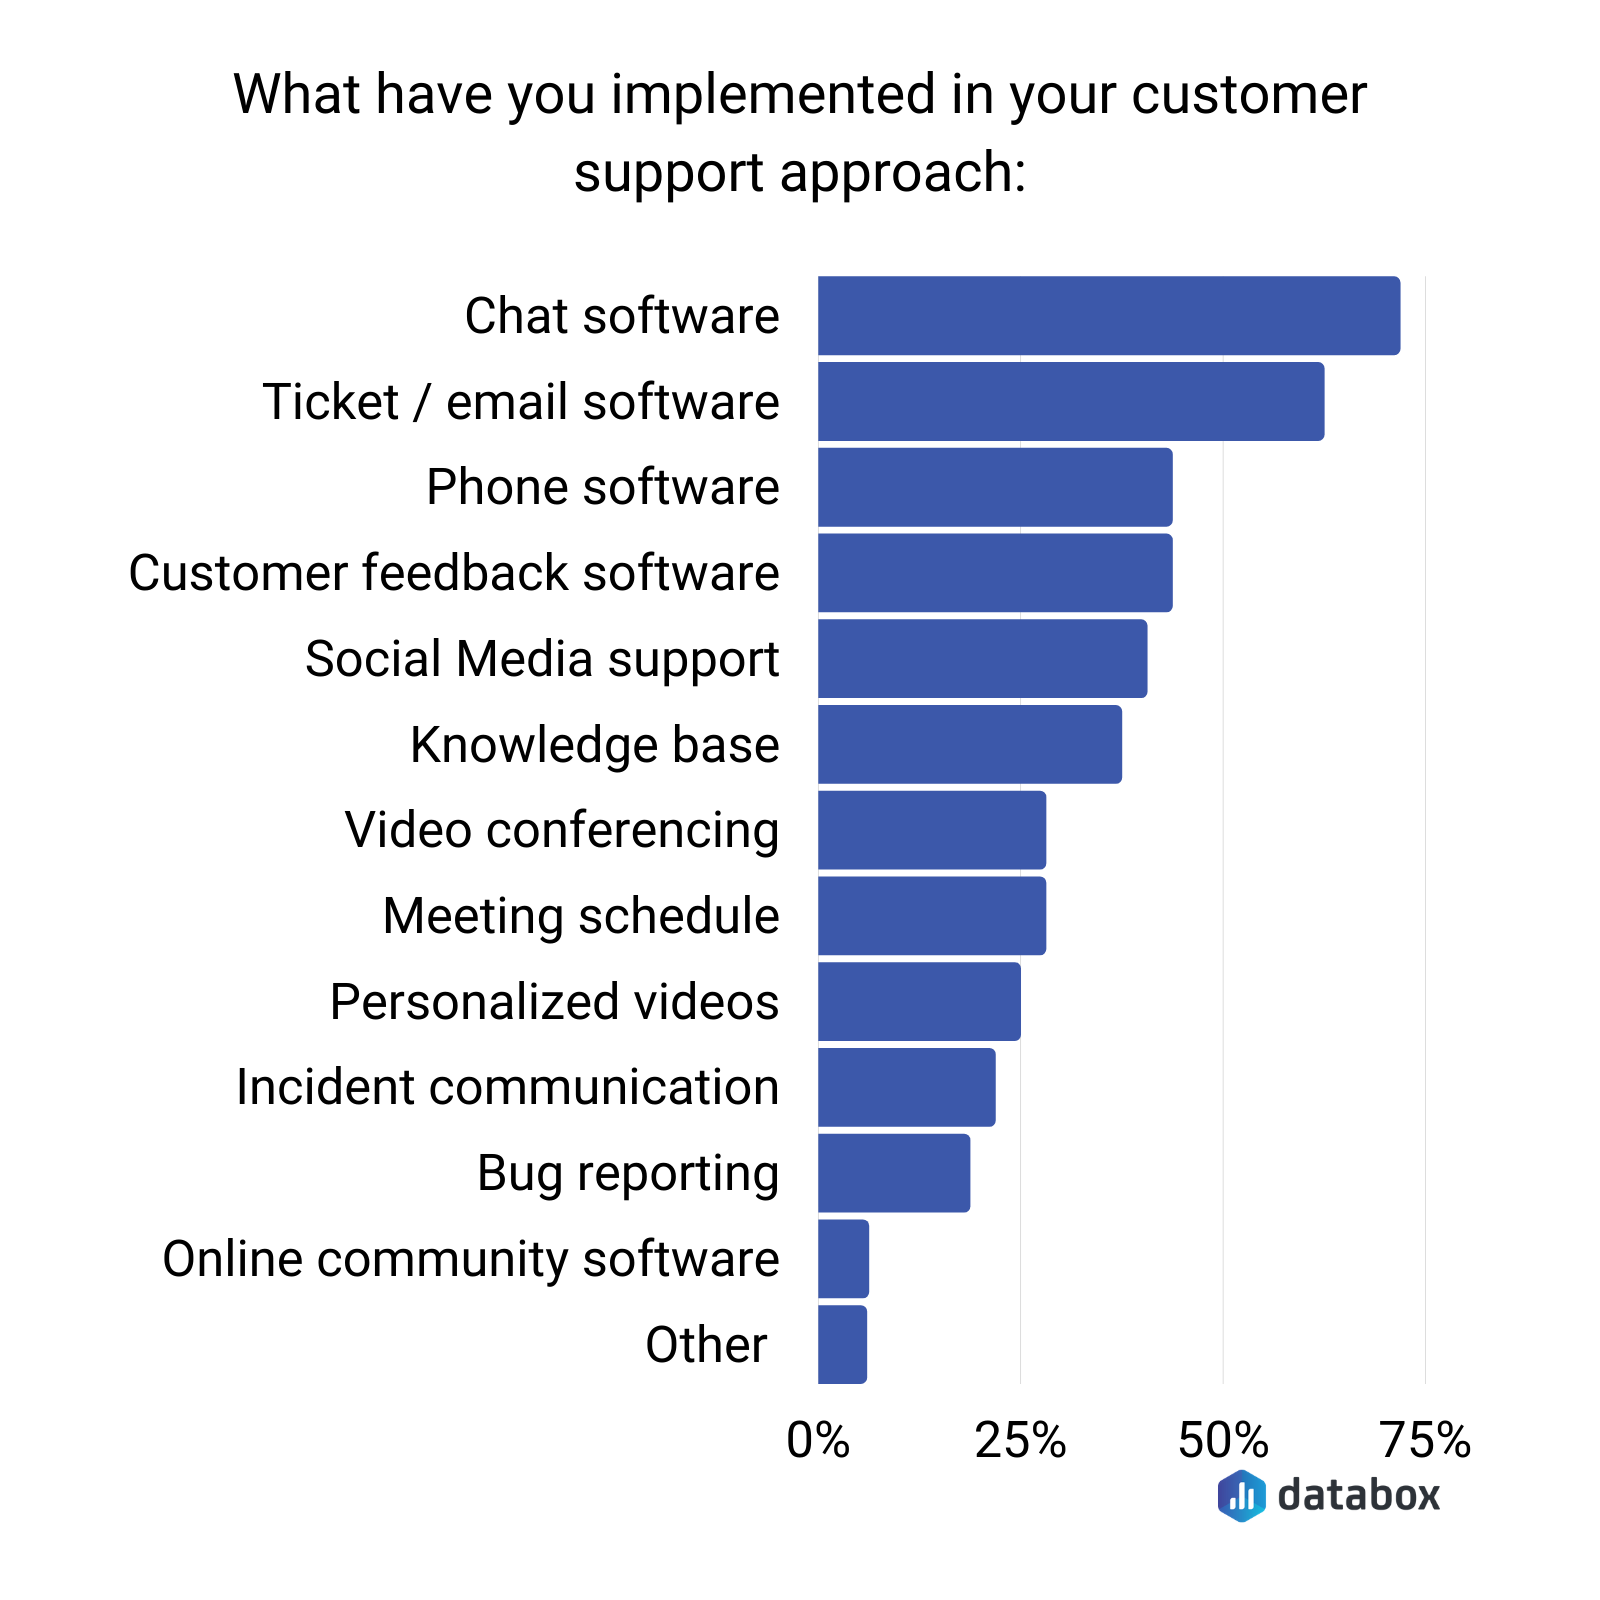 customer support approach survey results